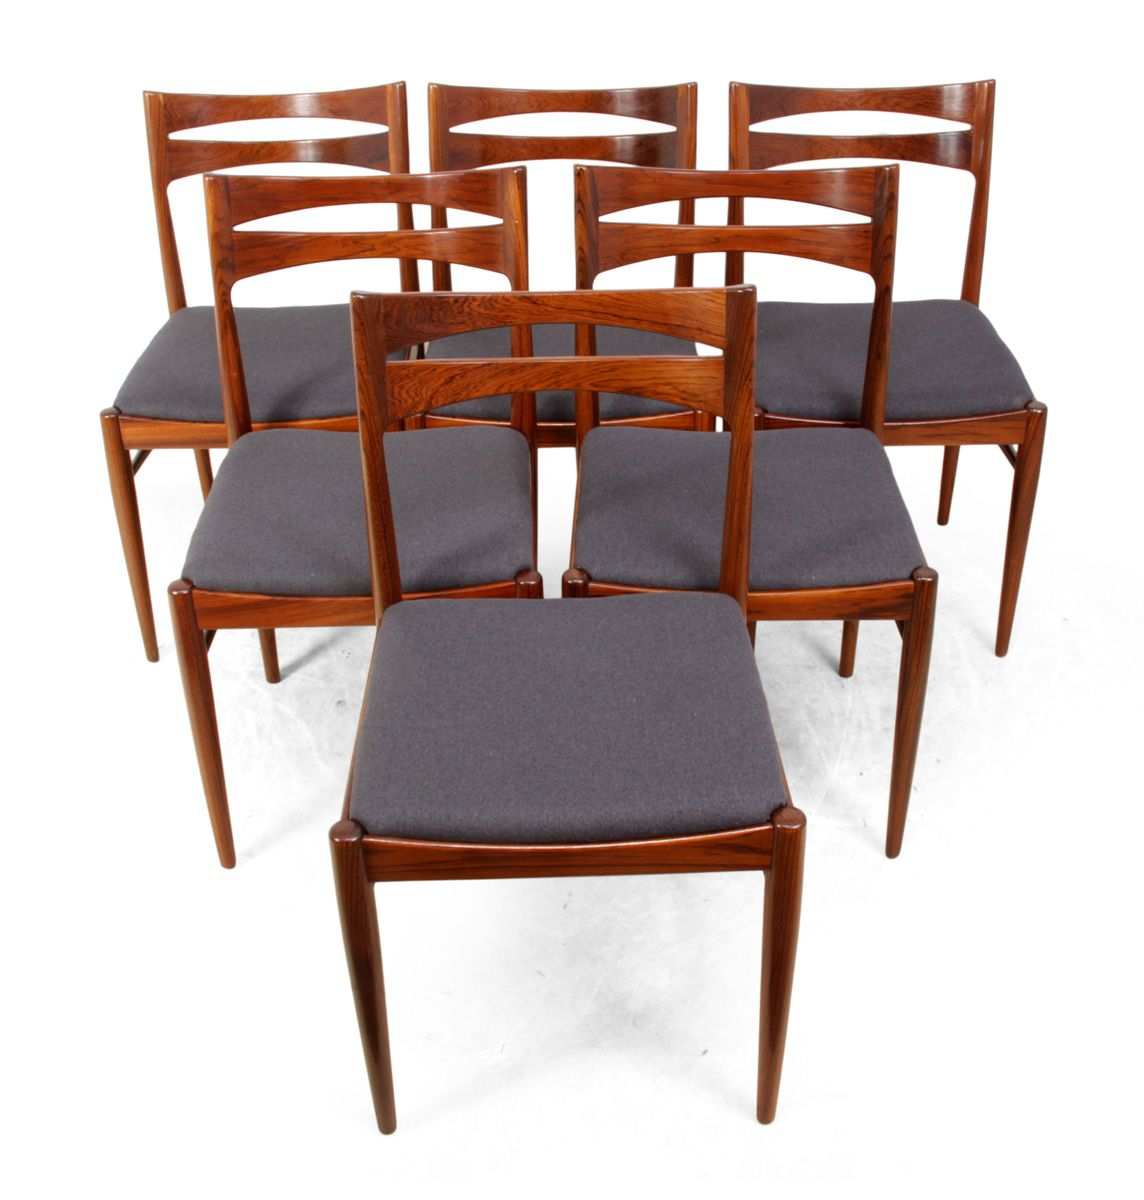 Danish Dining Chairs 1960s Set of 6 for sale at Pamono : danish dining chairs 1960s set of 6 3 from www.pamono.com size 1144 x 1200 jpeg 257kB